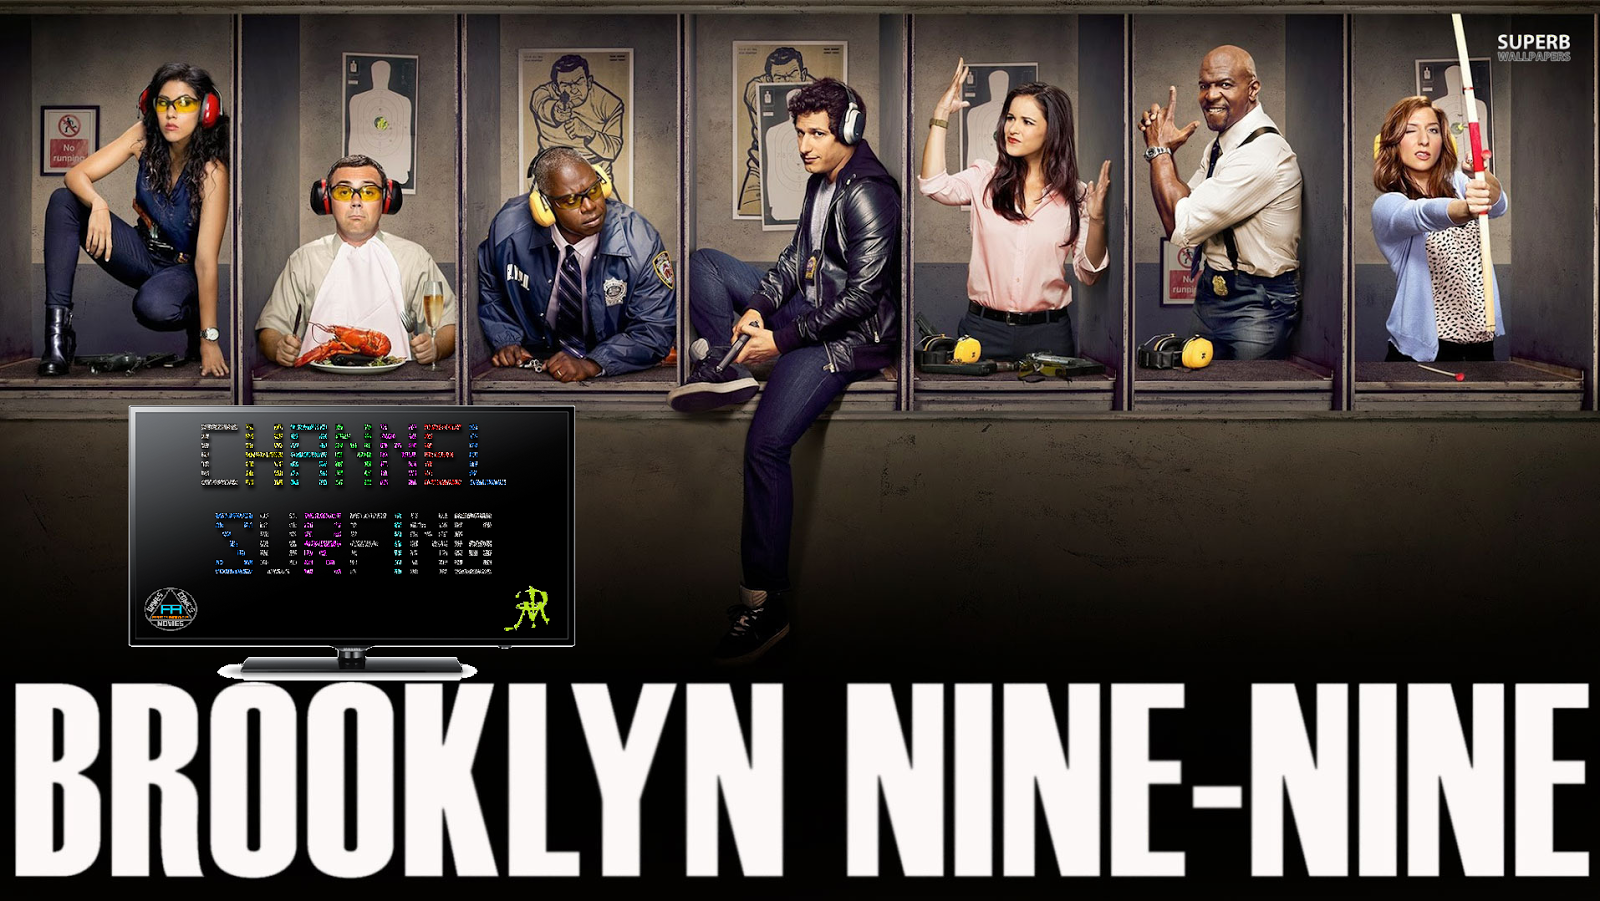 Brooklyn Nine-Nine Spoilers and Upcoming Guest Stars